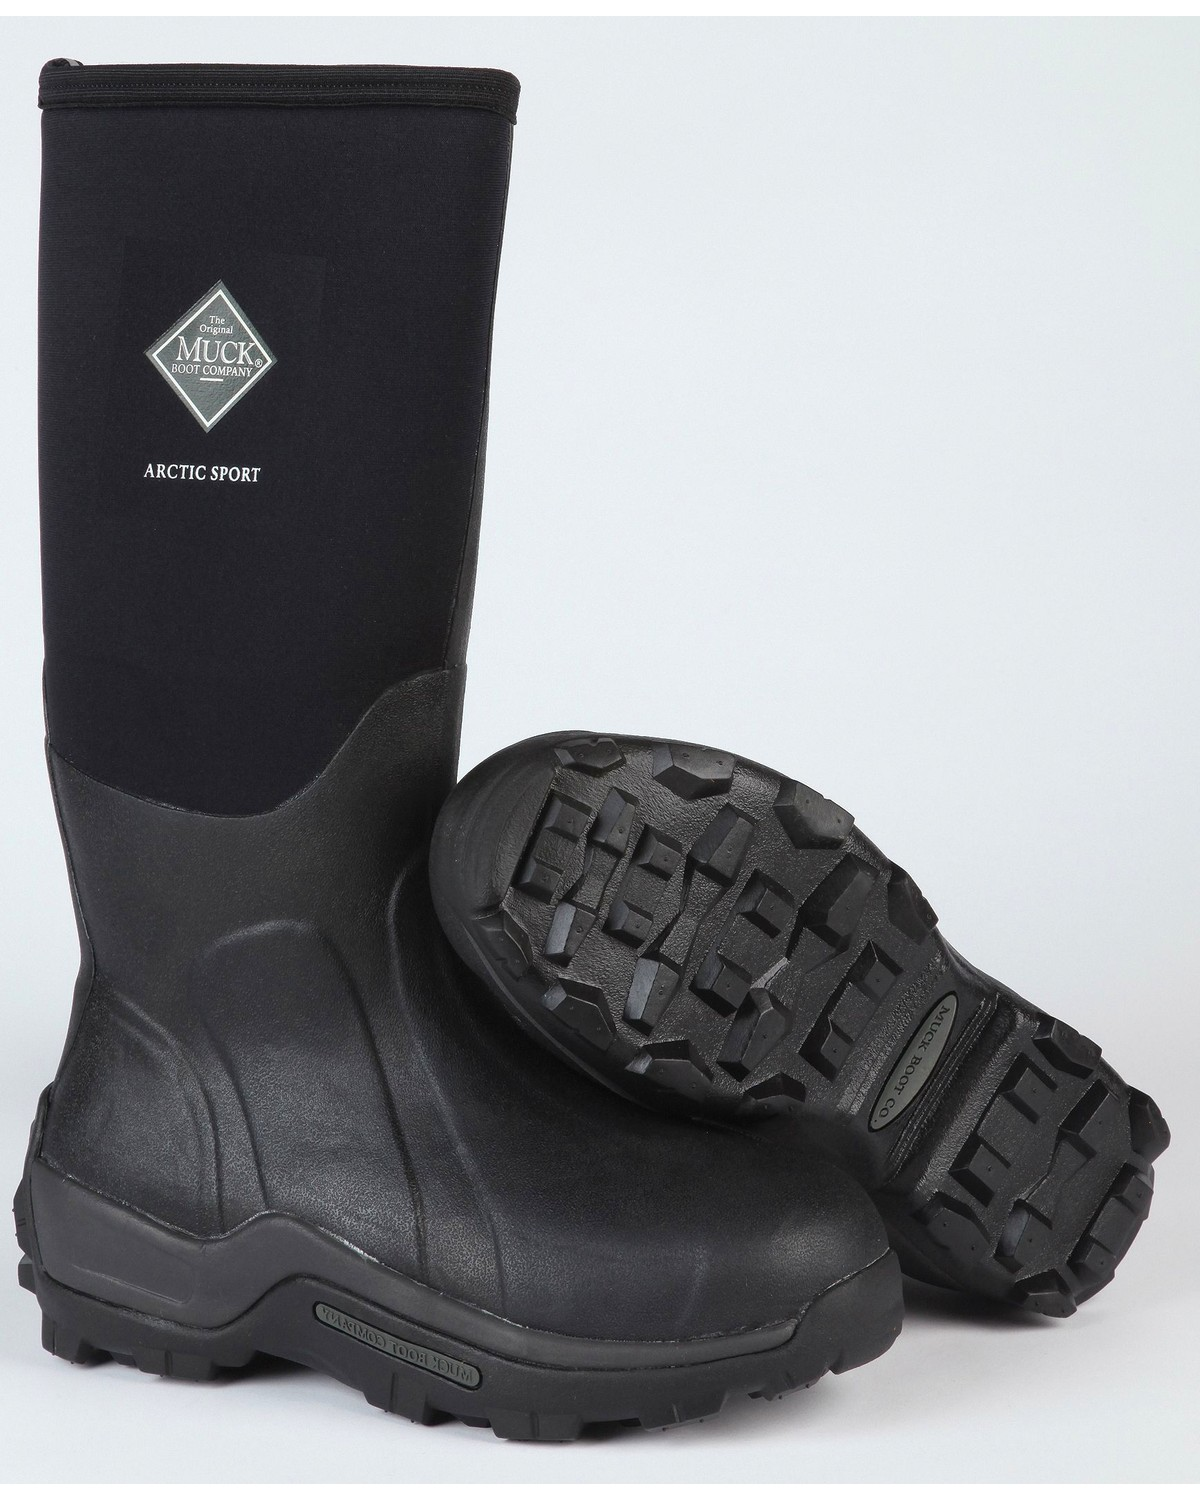 815acee8fff5 The Original Muck Boot Co. Arctic Sport Outdoor Boots